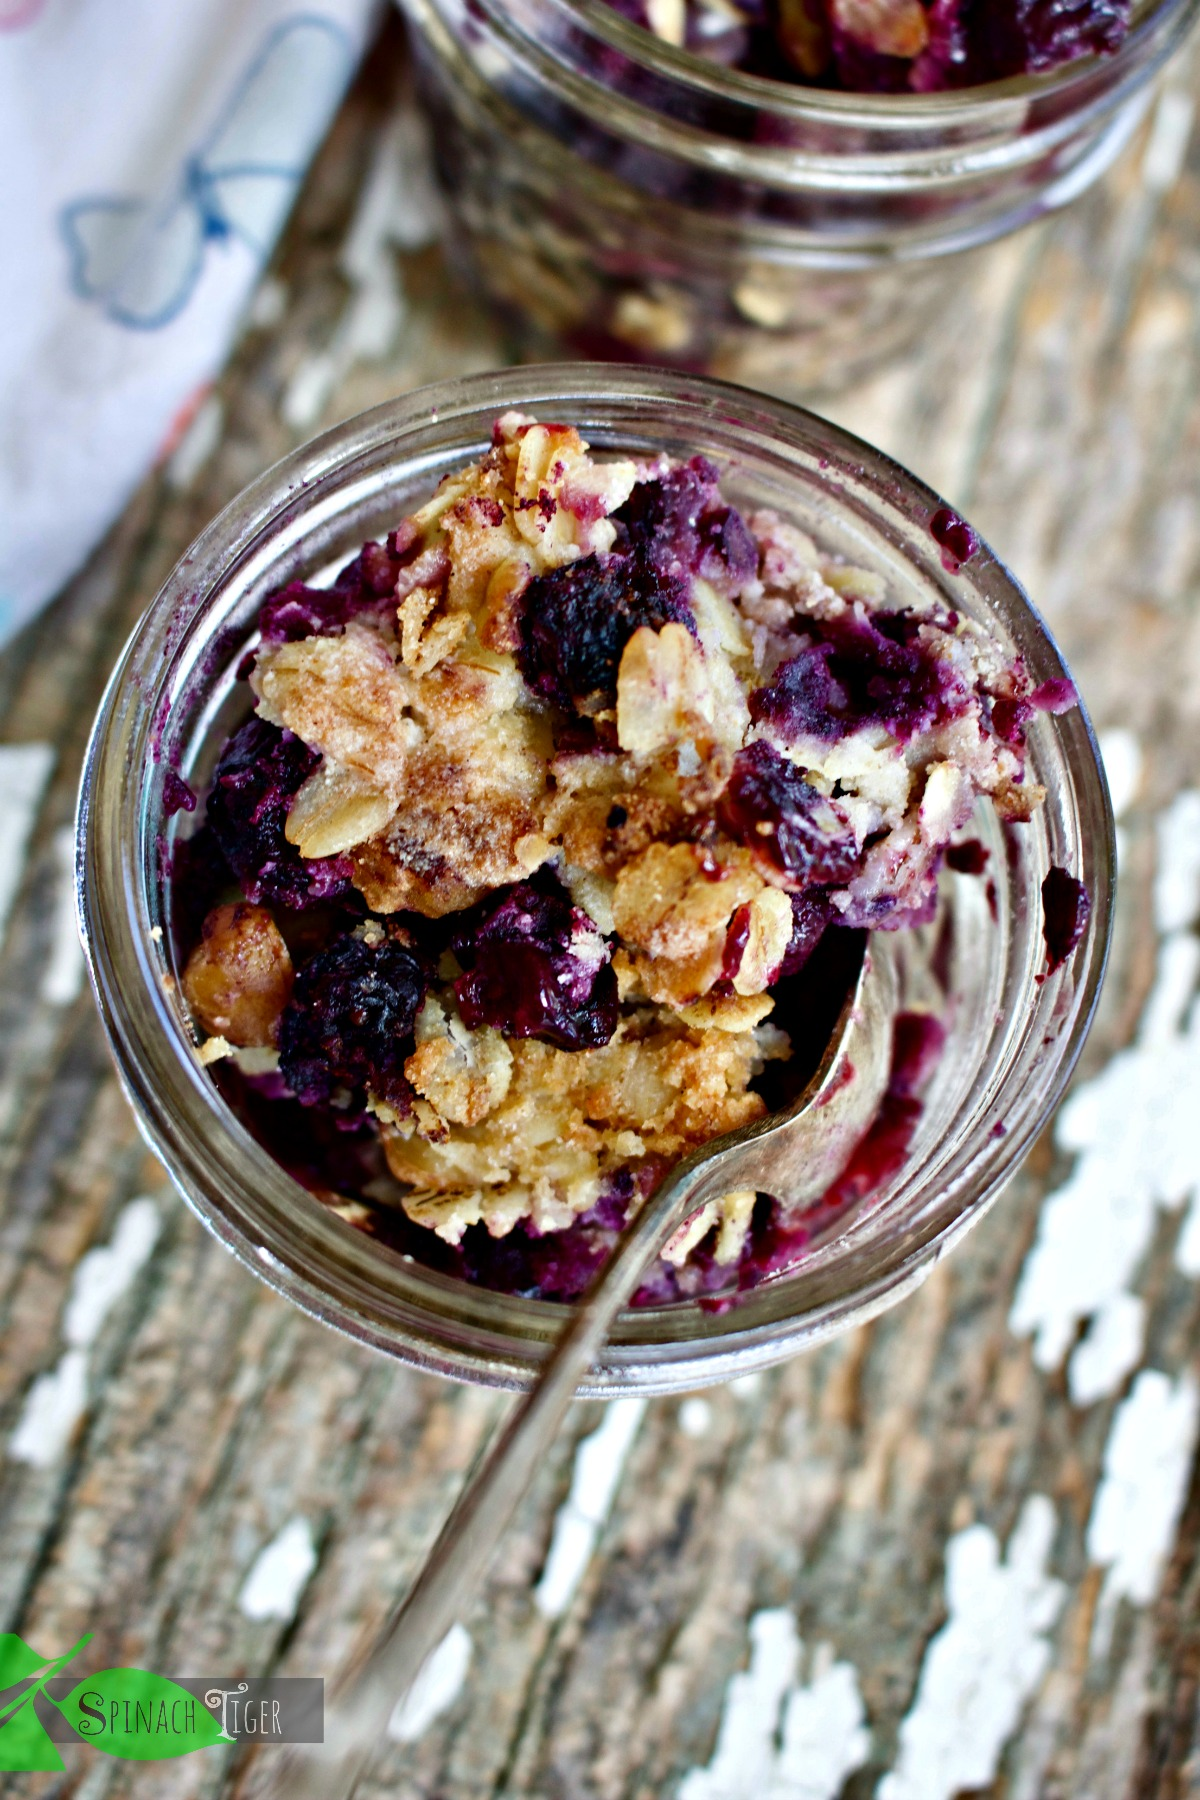 How to Make Blueberry Crisp Recipe,  Gluten Free from Spinach Tiger